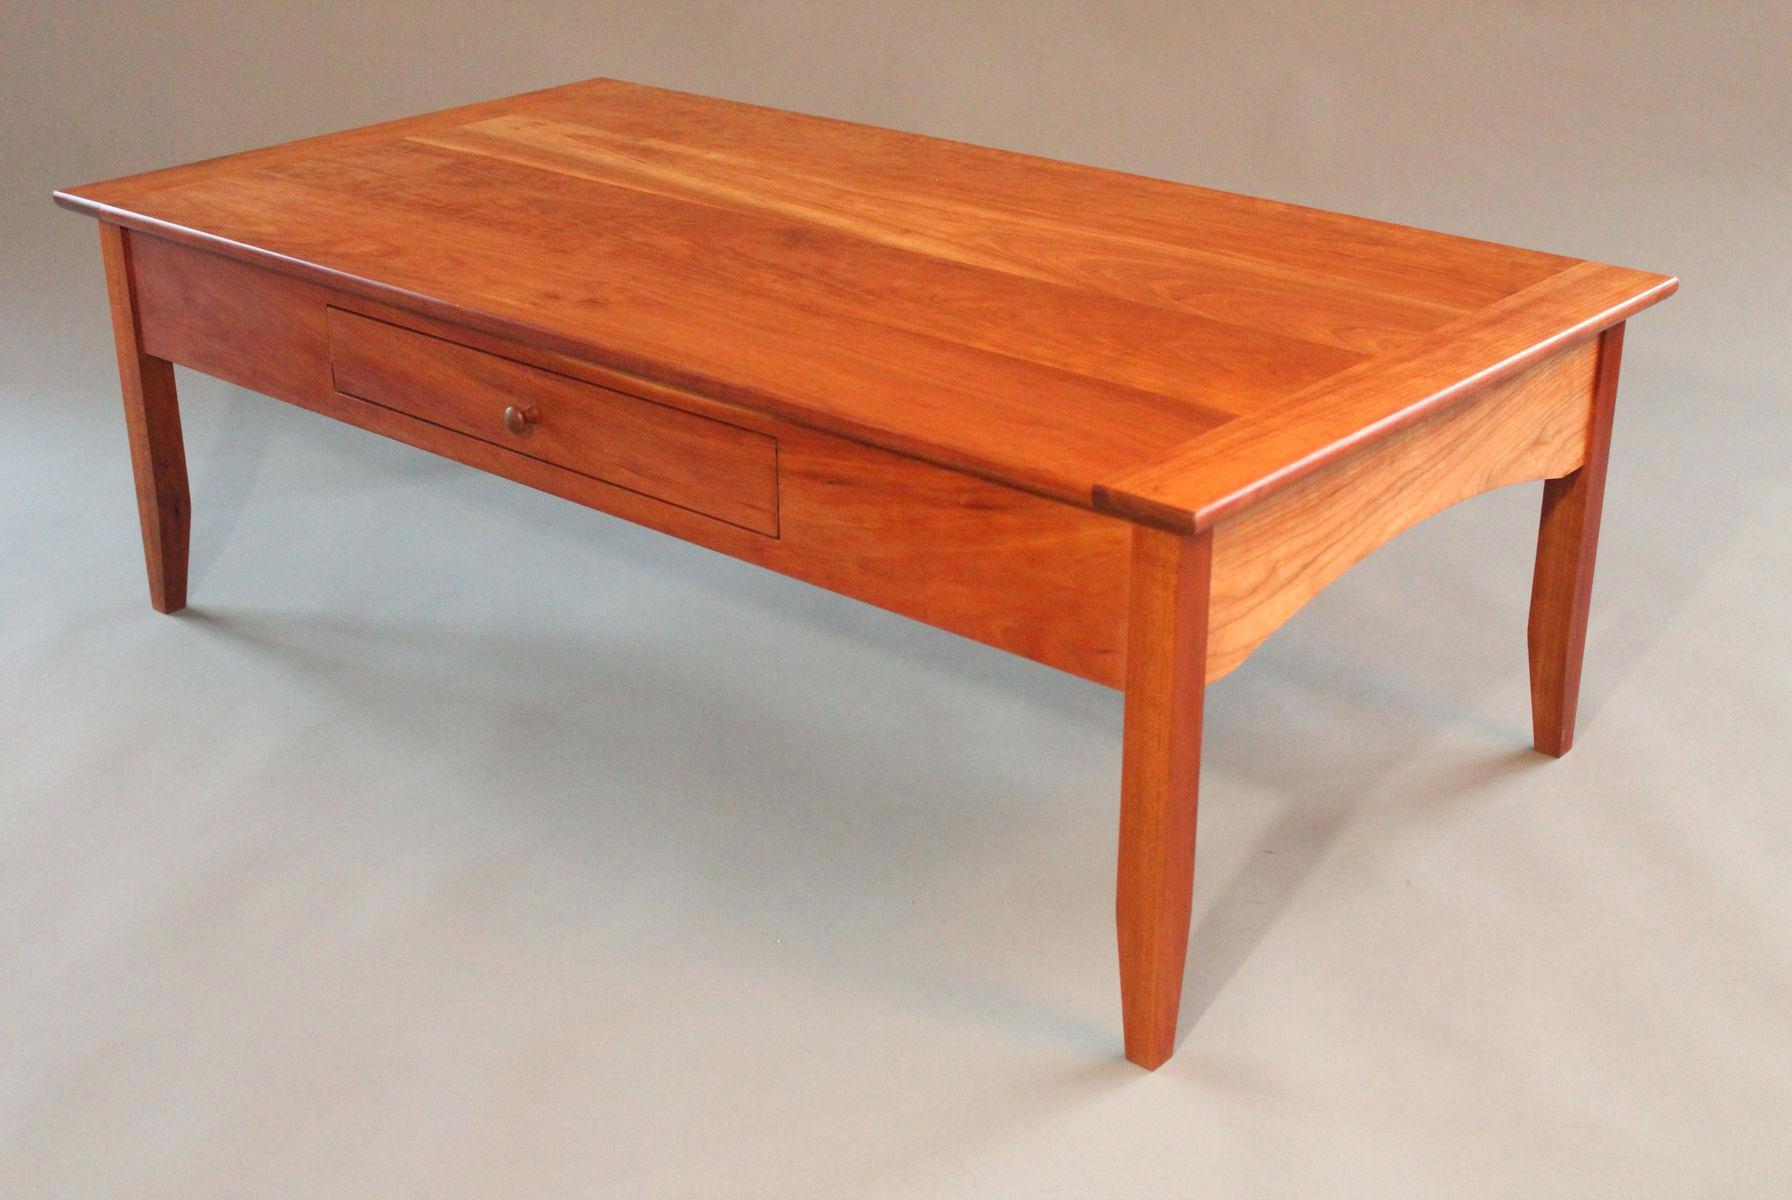 Cheap Cherry Wood Coffee Table With Glass Top Design